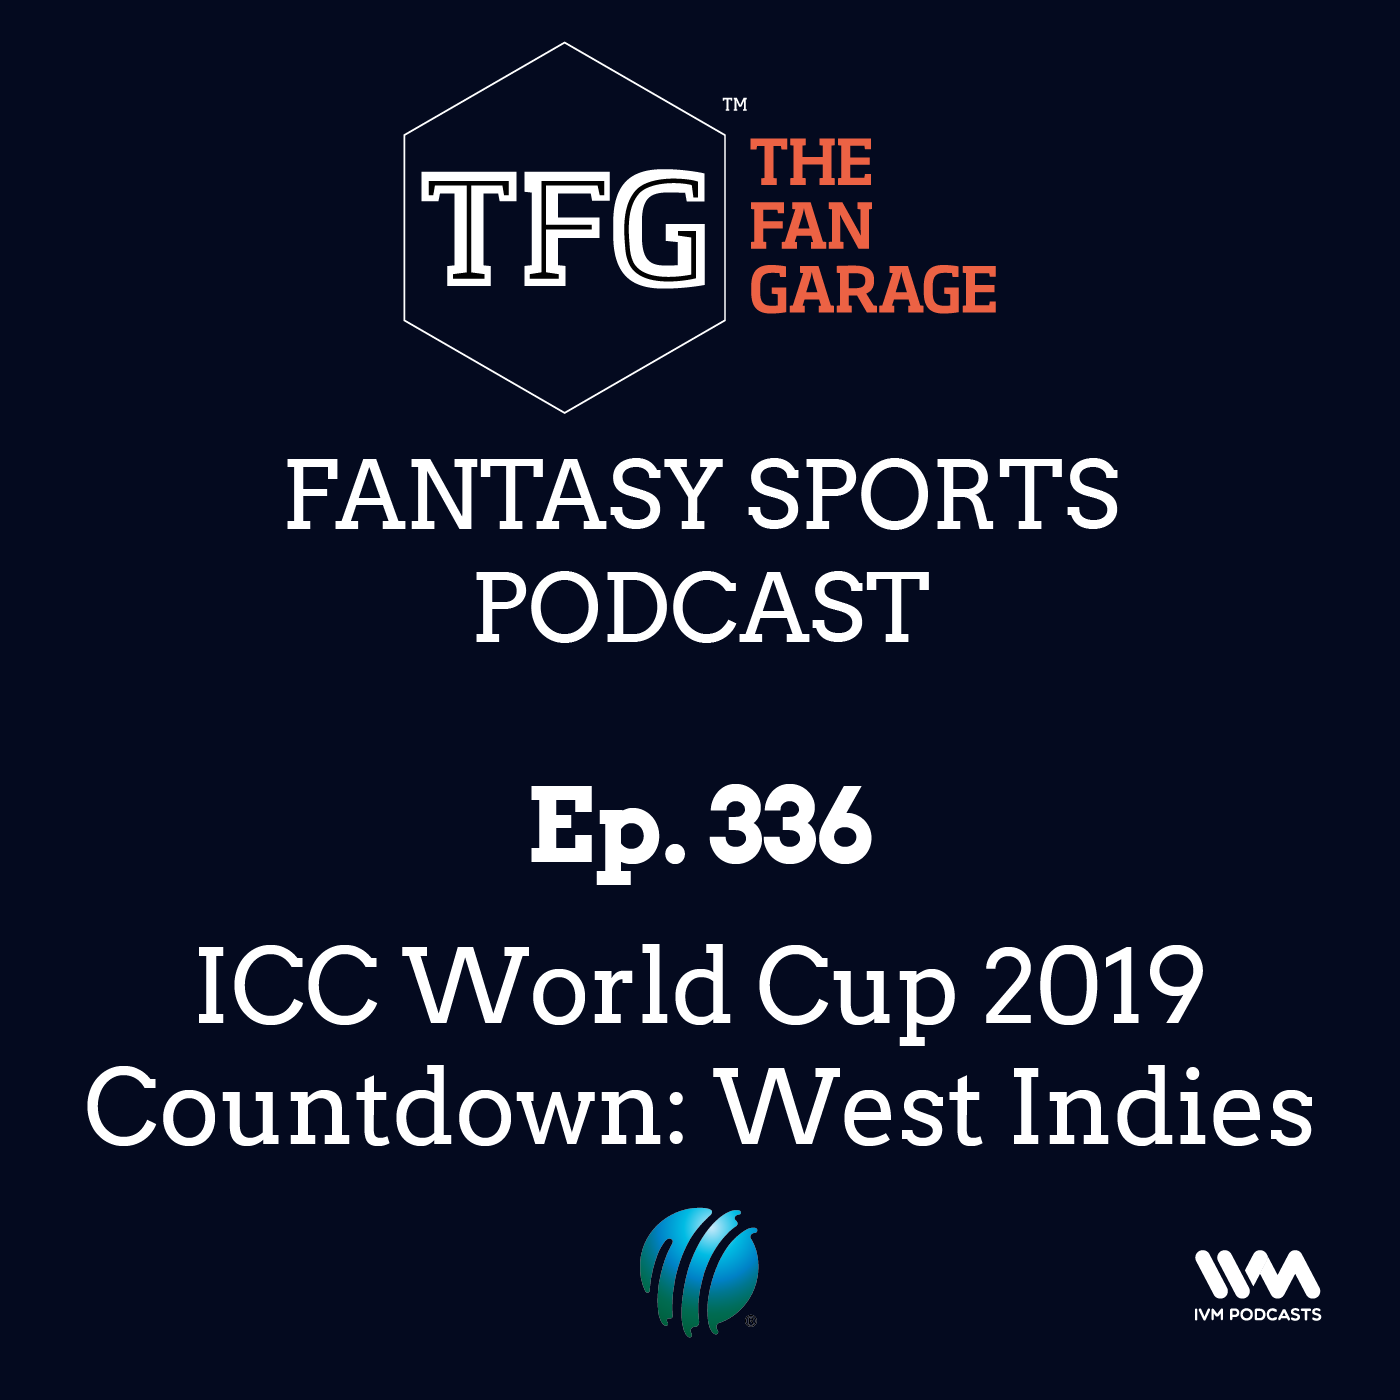 TFG Fantasy Sports Podcast Ep. 336: ICC World Cup 2019 Countdown: West Indies